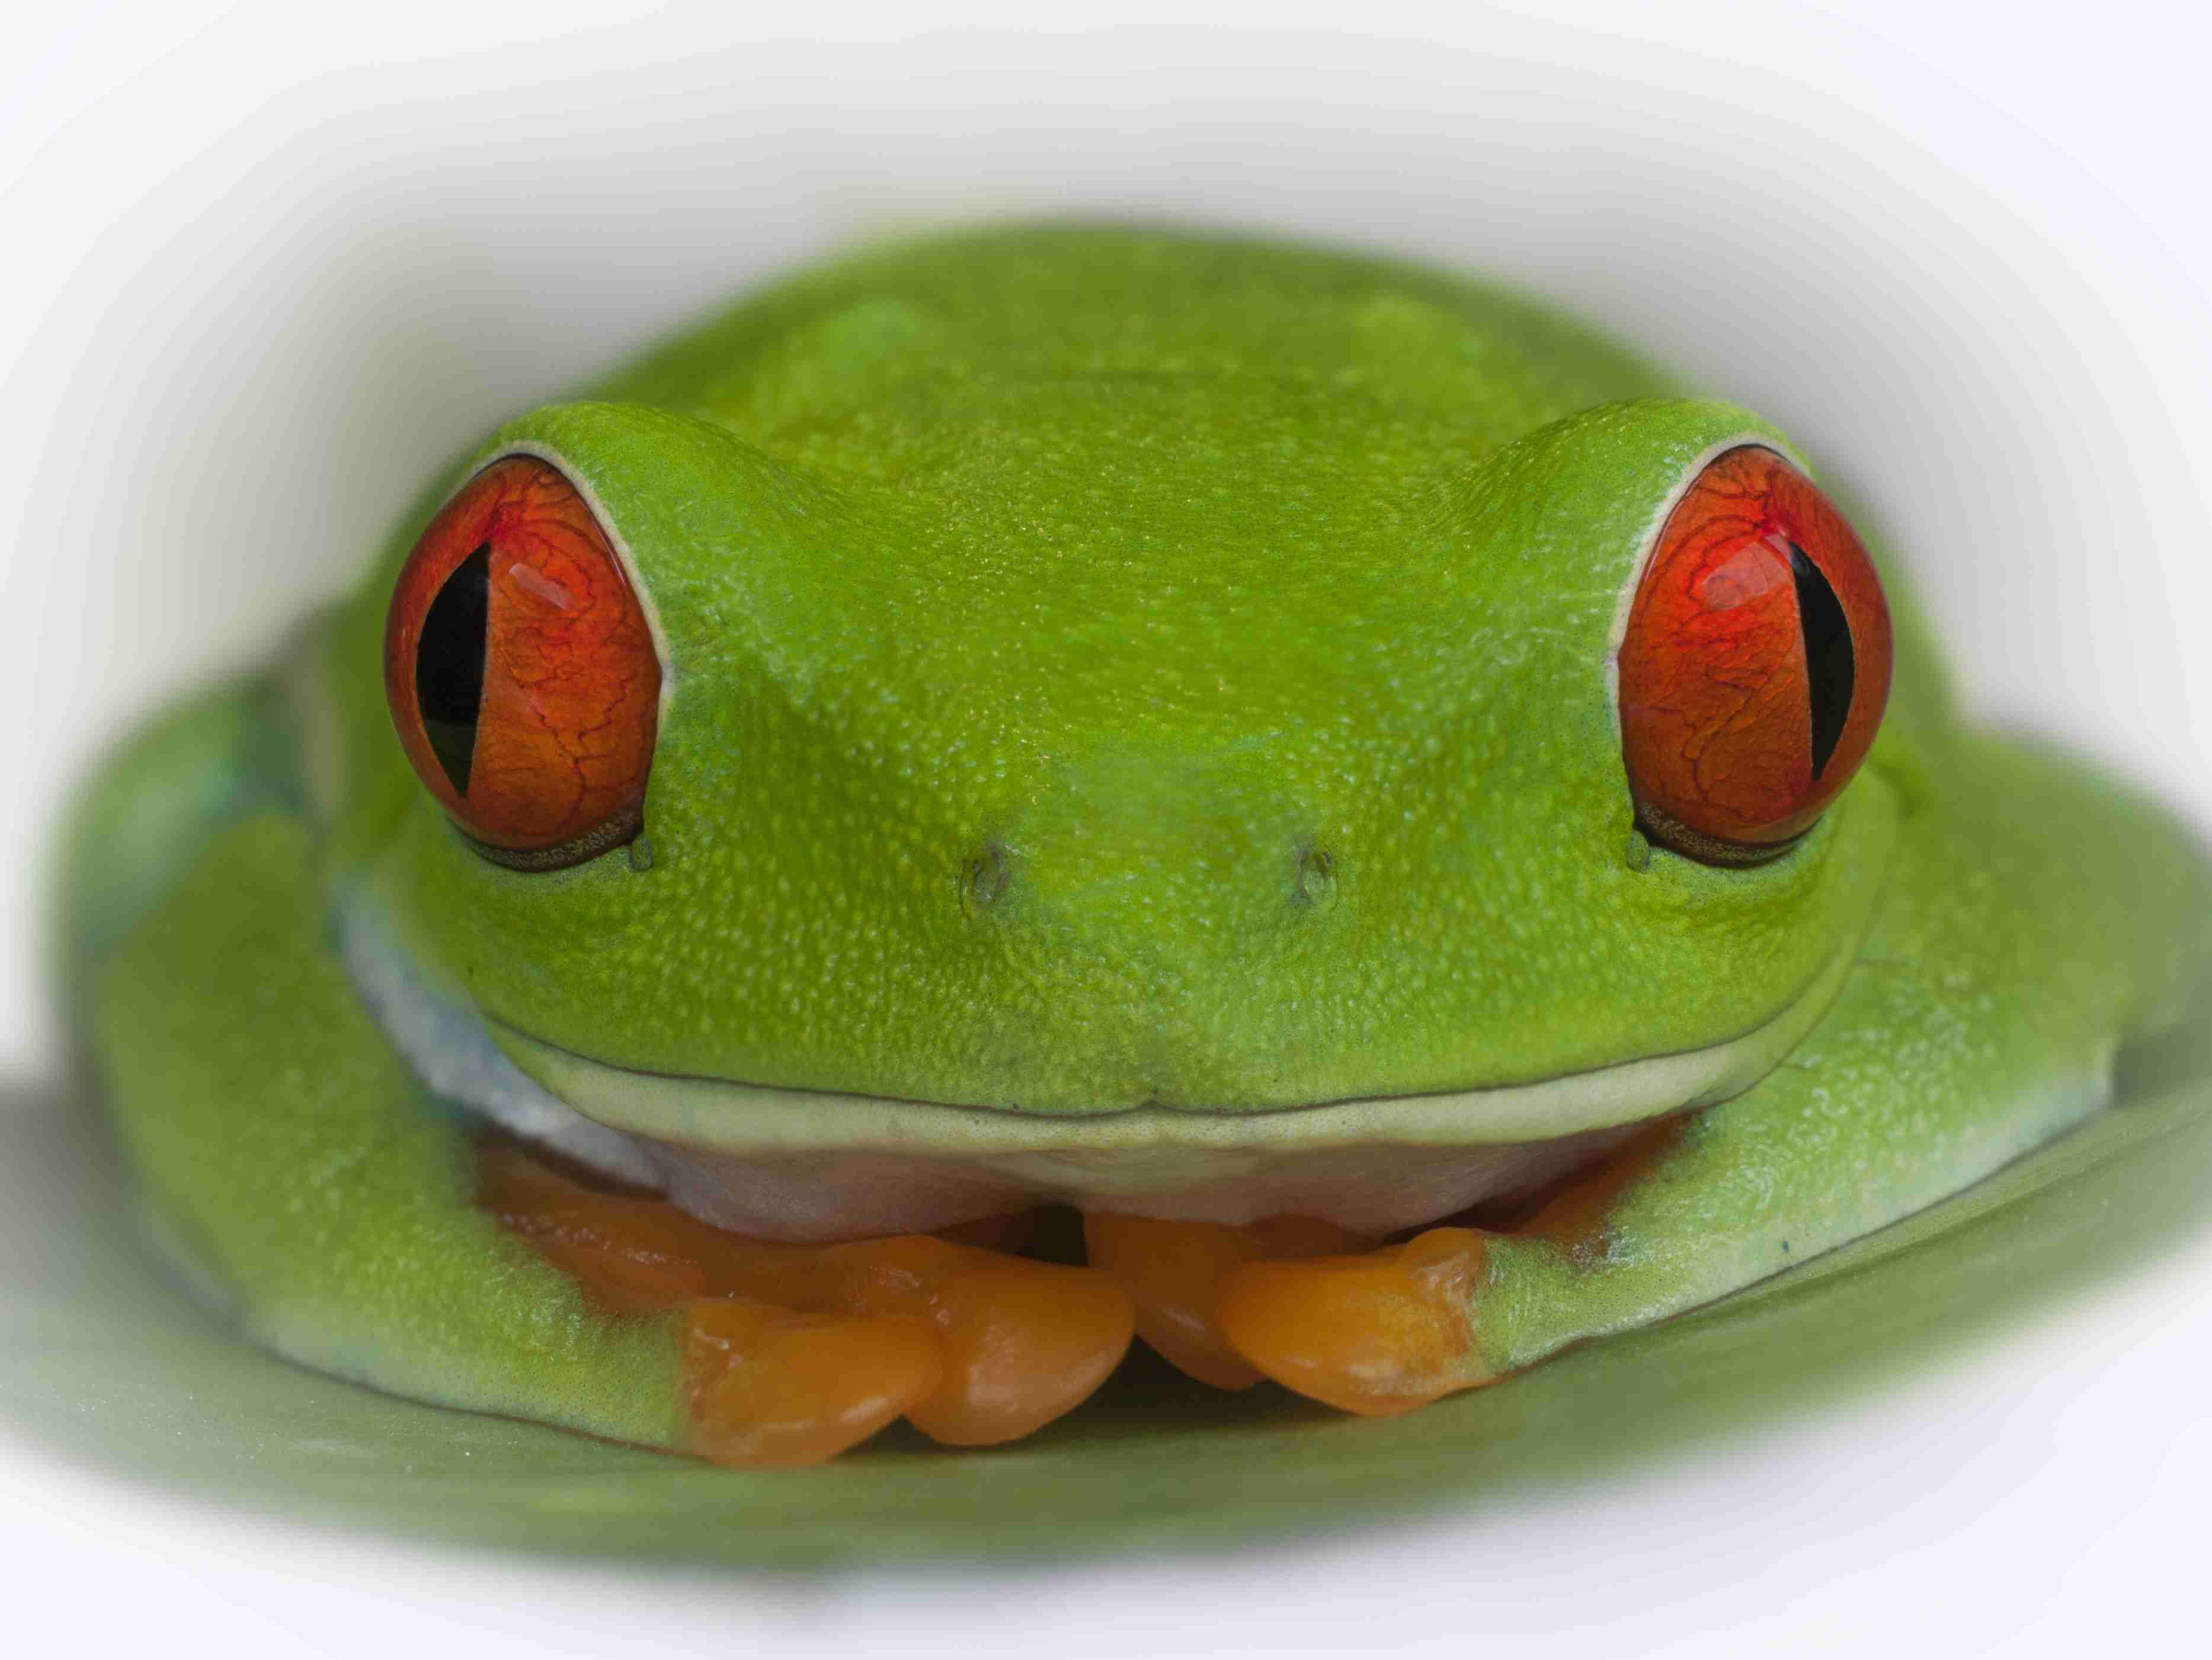 During the day, the frog folds its colored legs beneath it. If disturbed, it opens its eyes to startle predators.